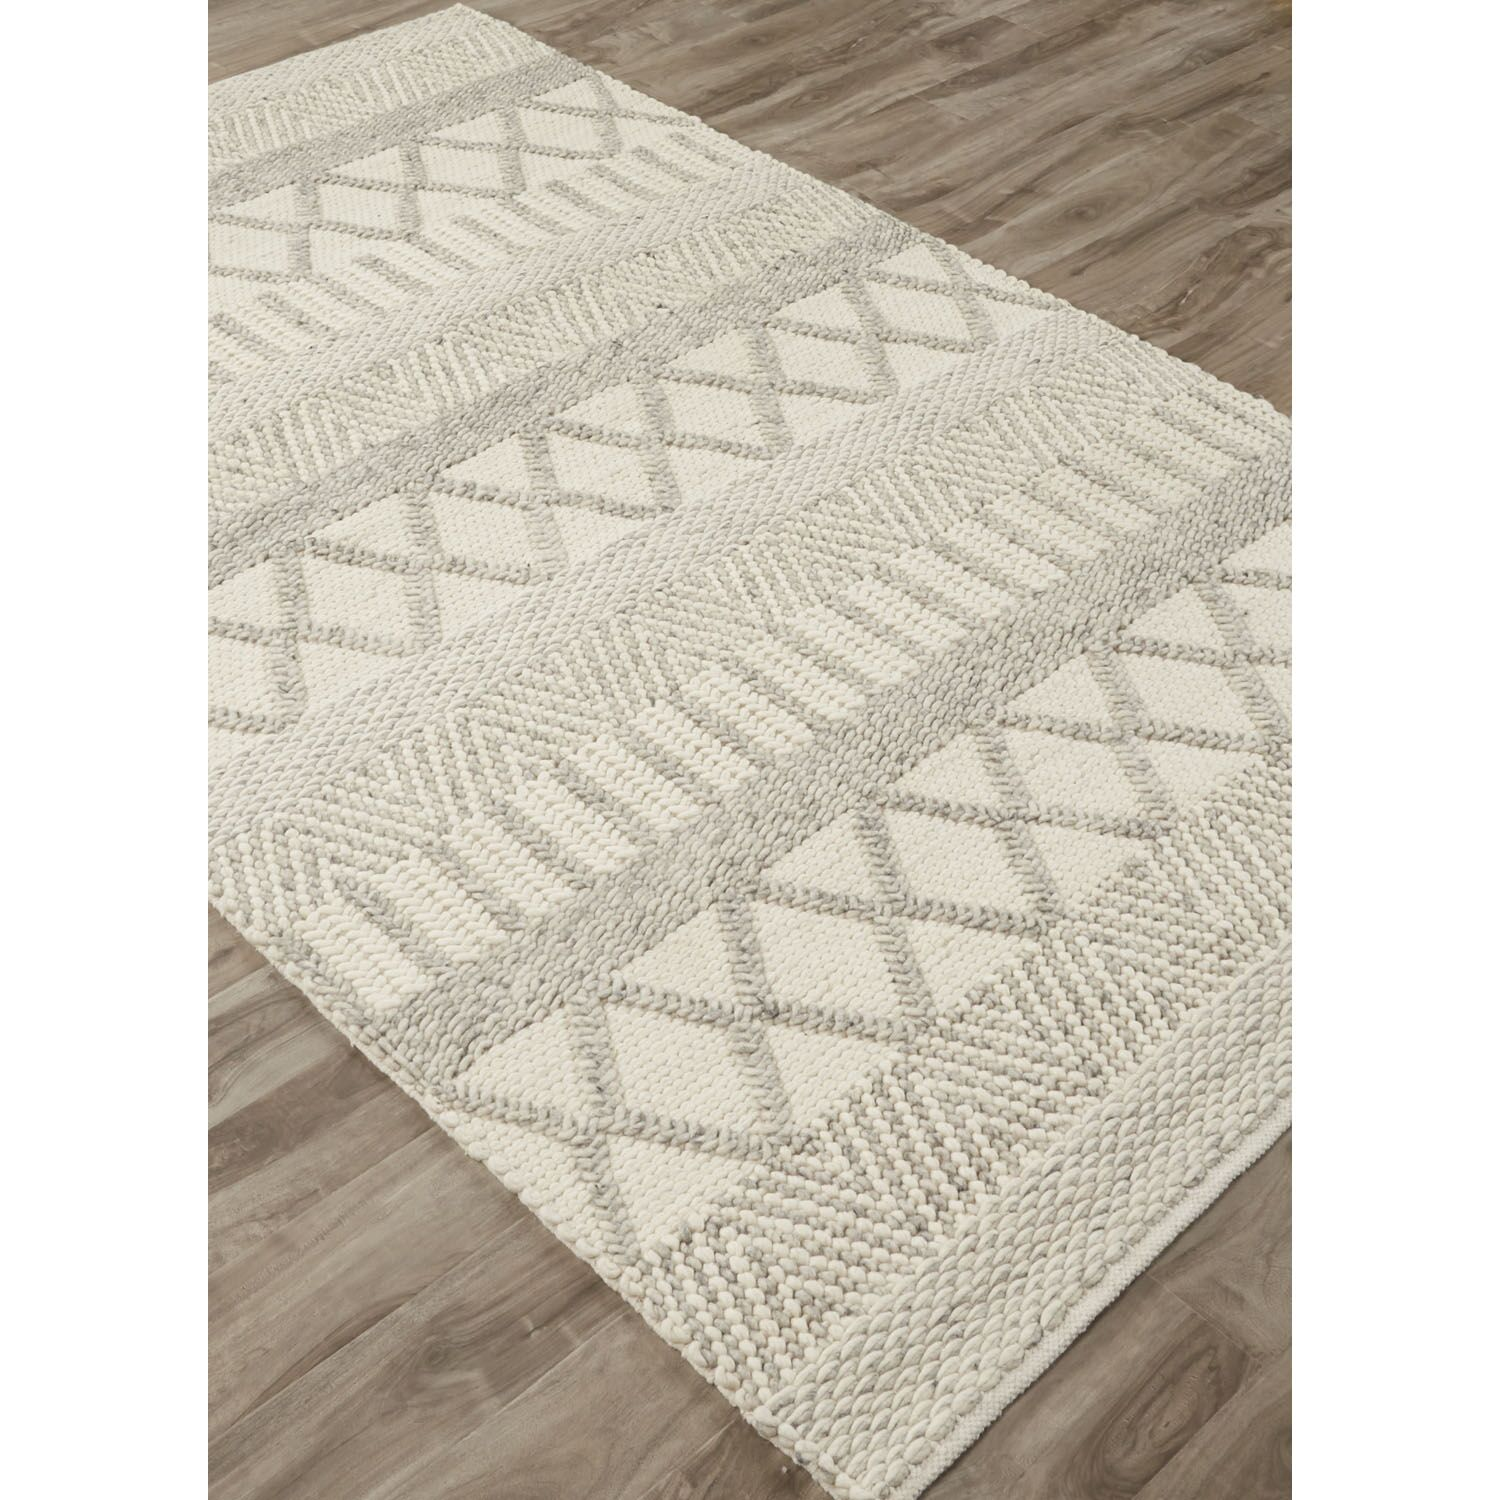 Checotah Ivory/Gray Area Rug Rug Size: Rectangle 8' x 10'